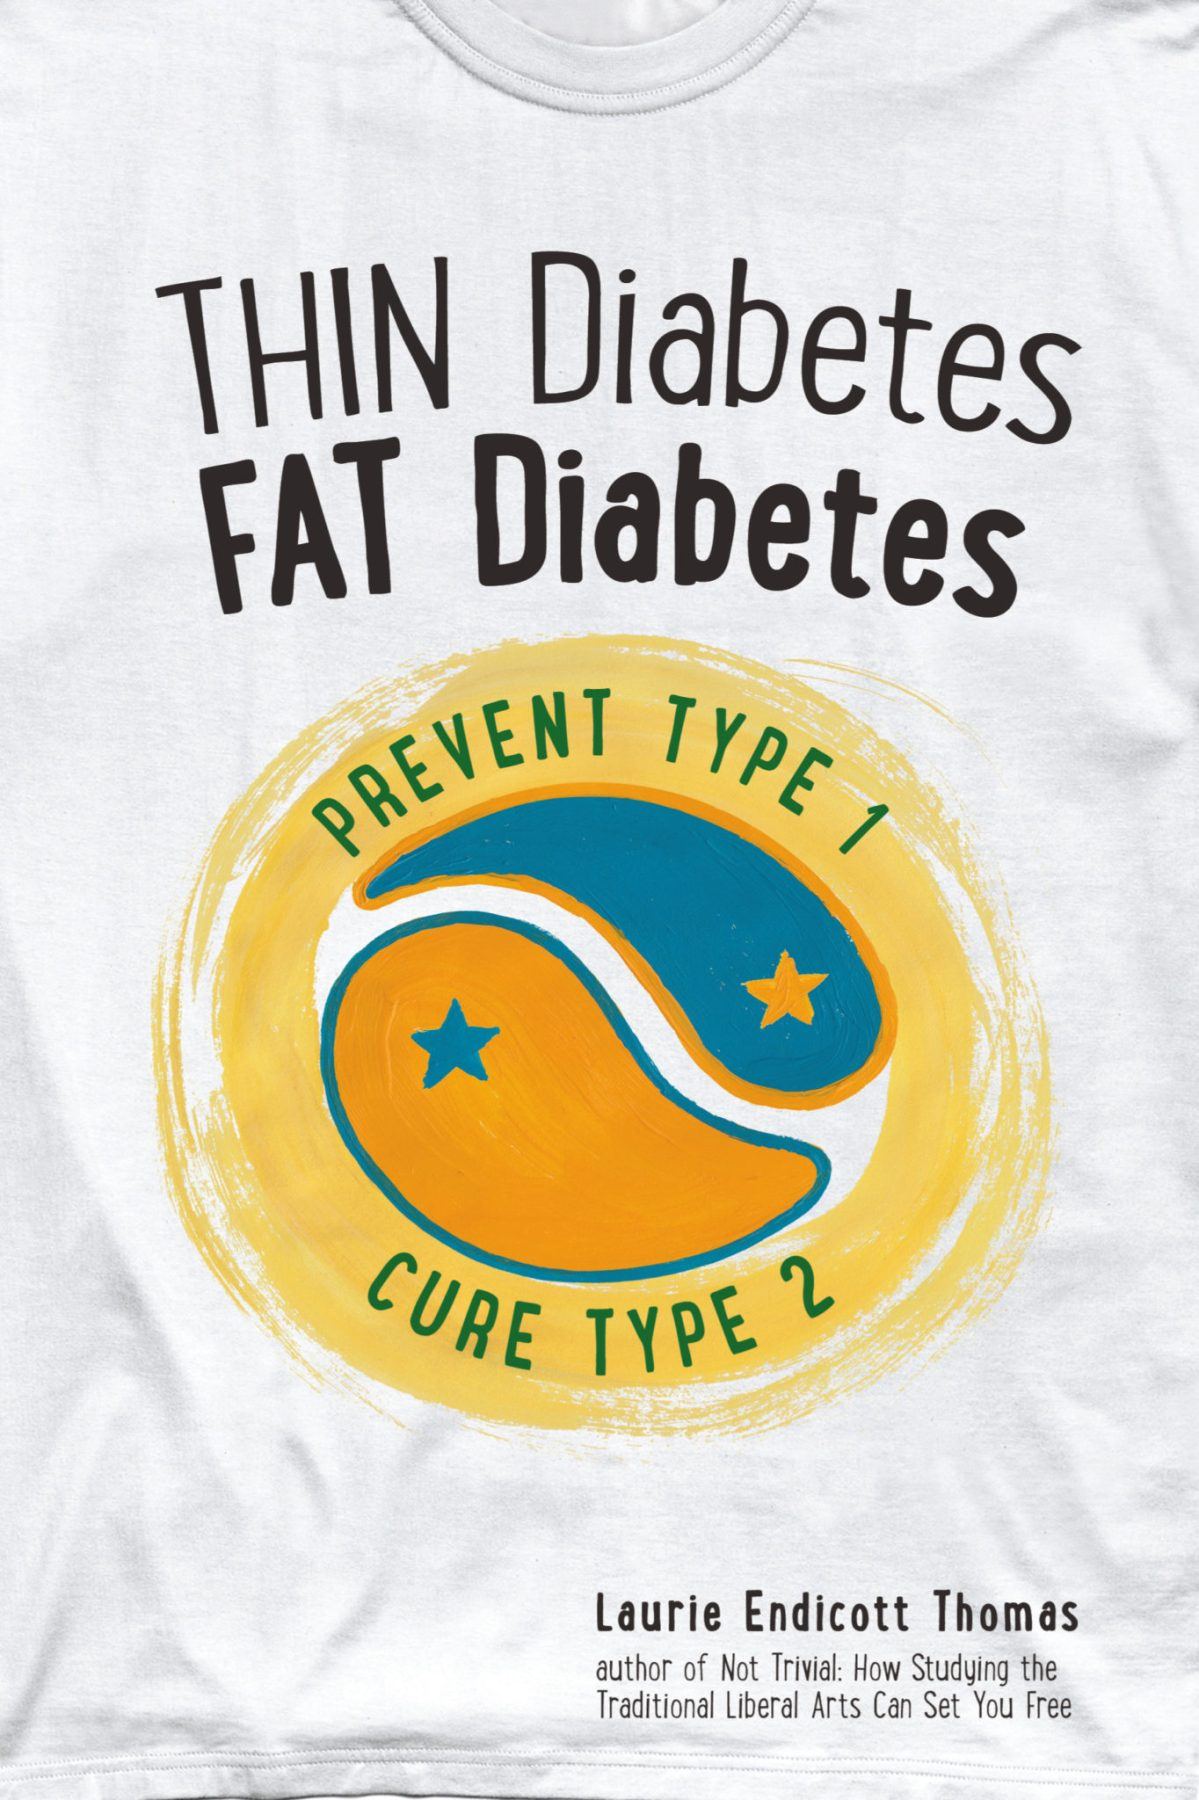 Thin Diabetes, Fat Diabetes